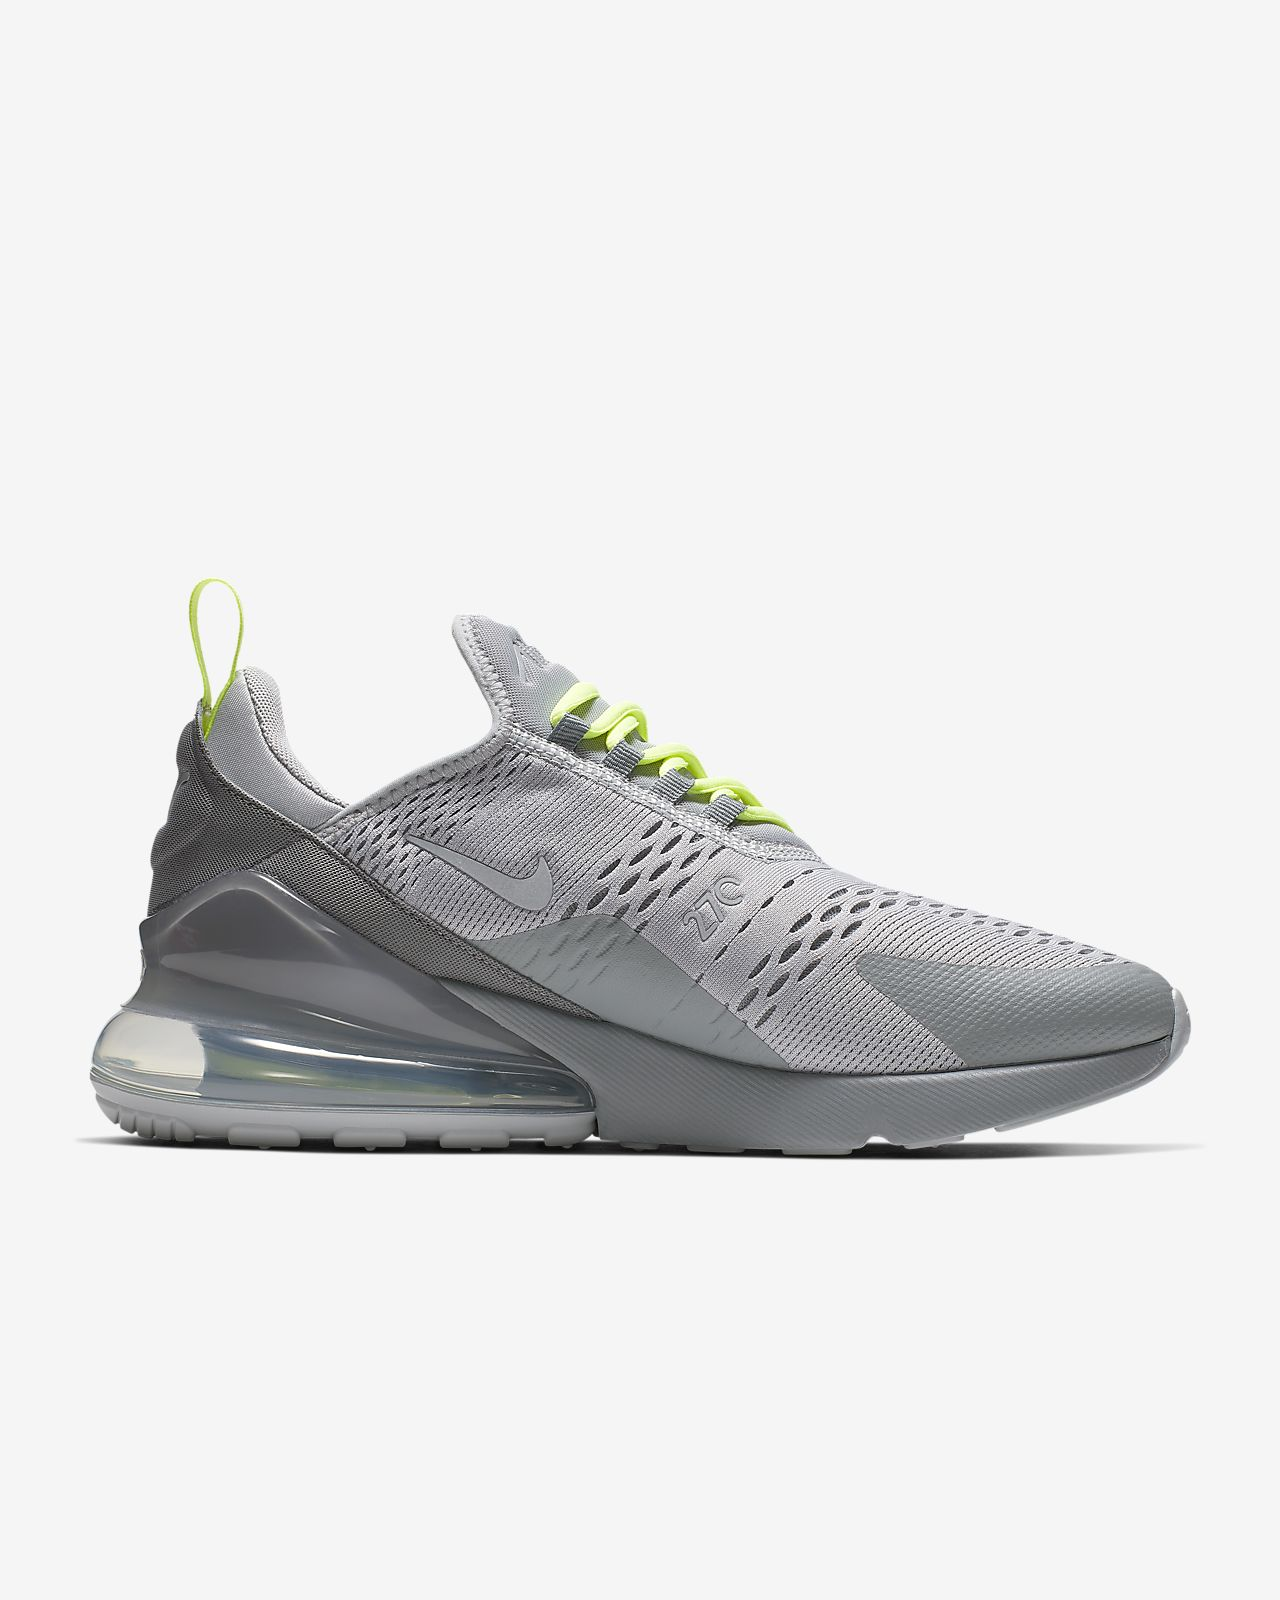 best service 5c691 f1c45 Low Resolution Nike Air Max 270 Men s Shoe Nike Air Max 270 Men s Shoe